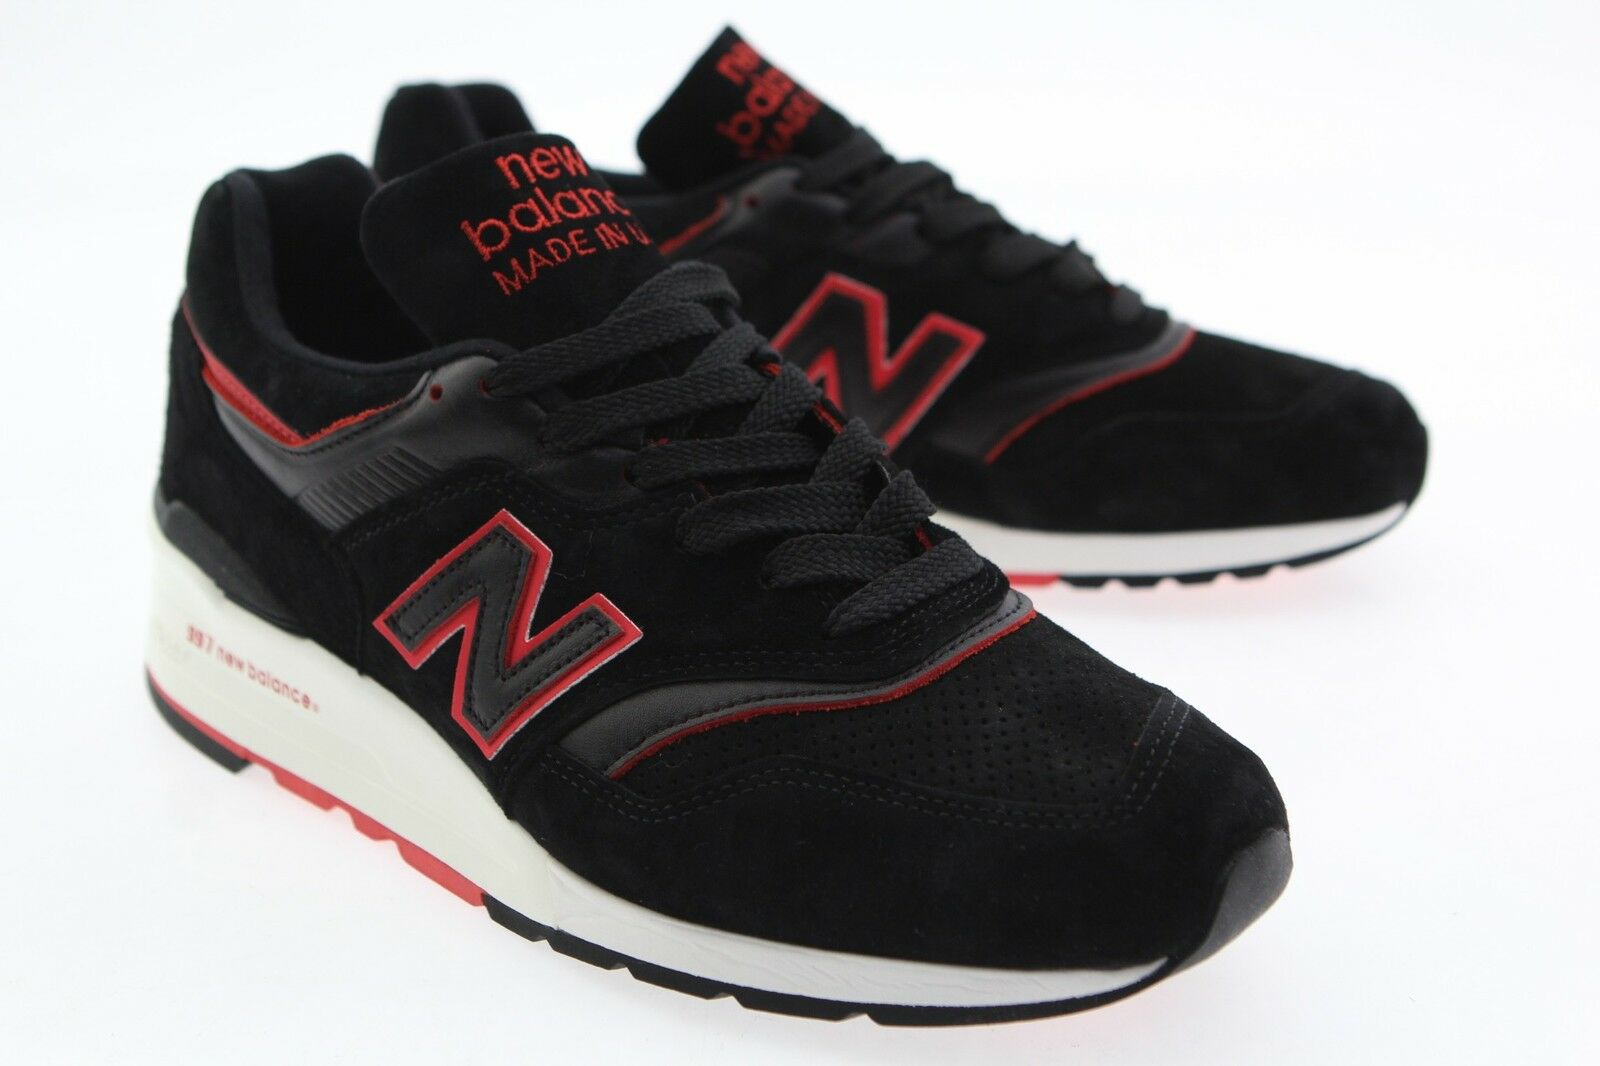 New Balance Men 997 Air Exploration M997DEXP - Made Made Made In USA black red M997DEXP 4f8874